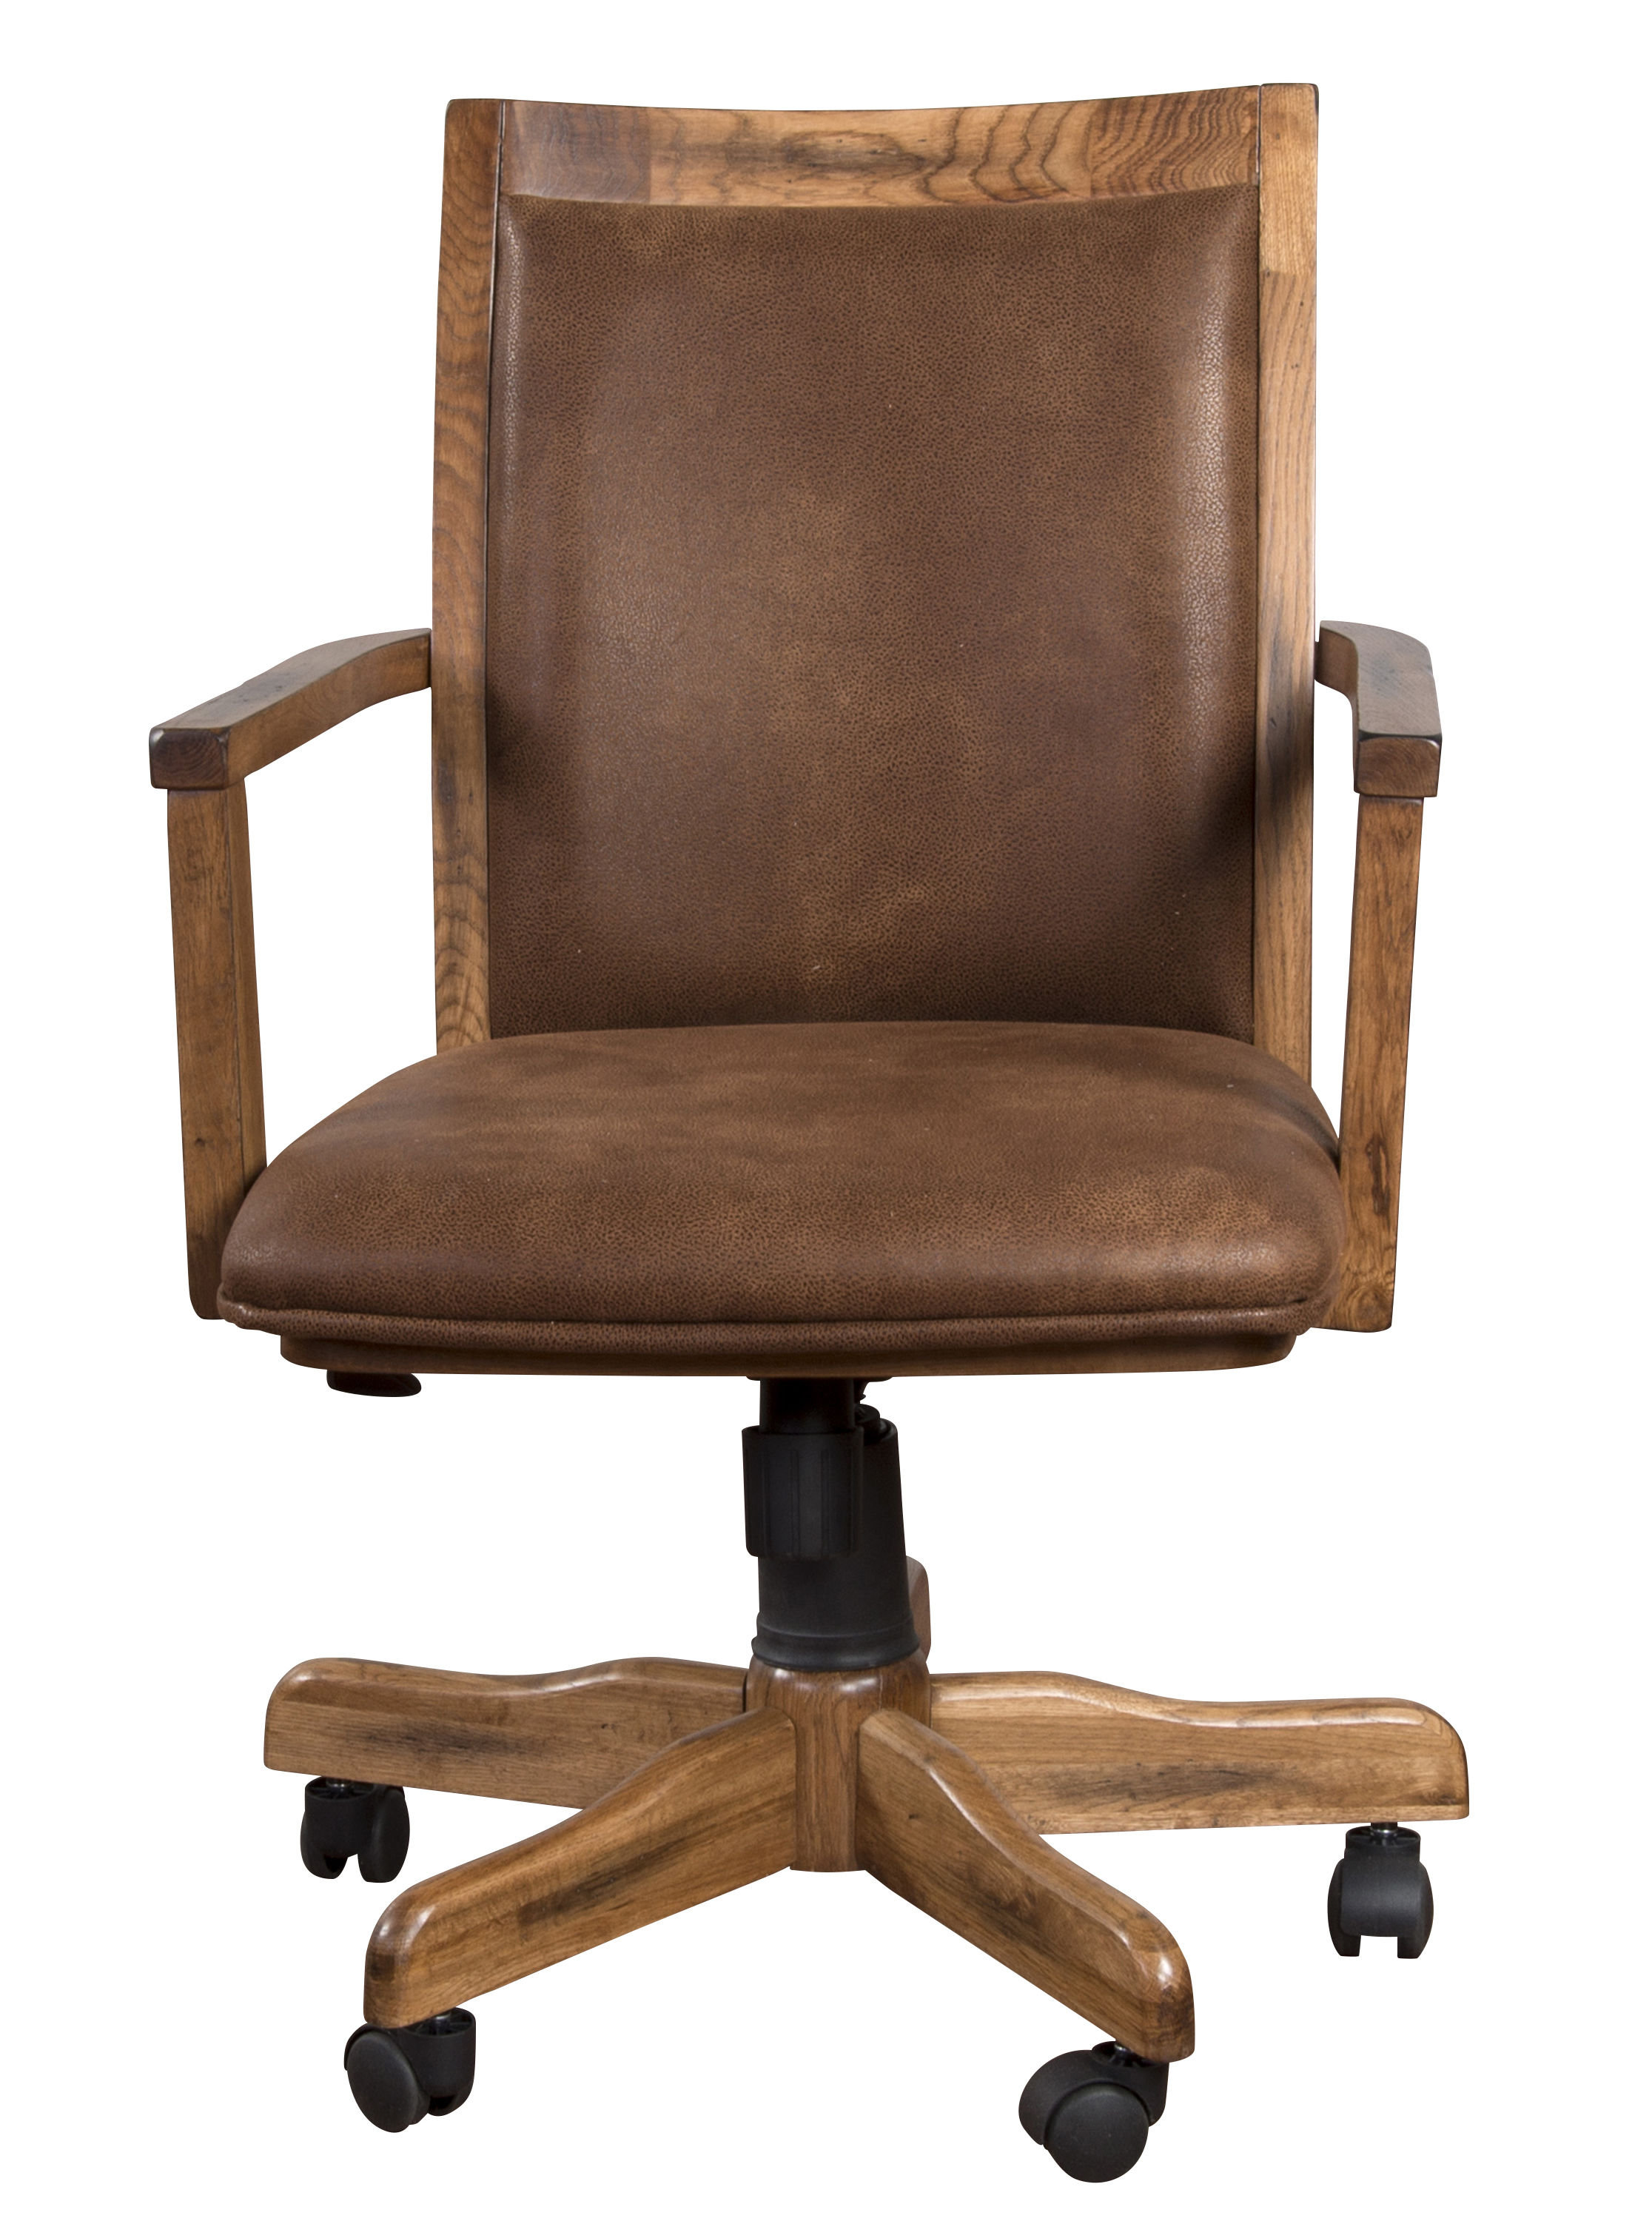 Sunny Designs Sedona Rustic Oak Office Chair The Classy Home